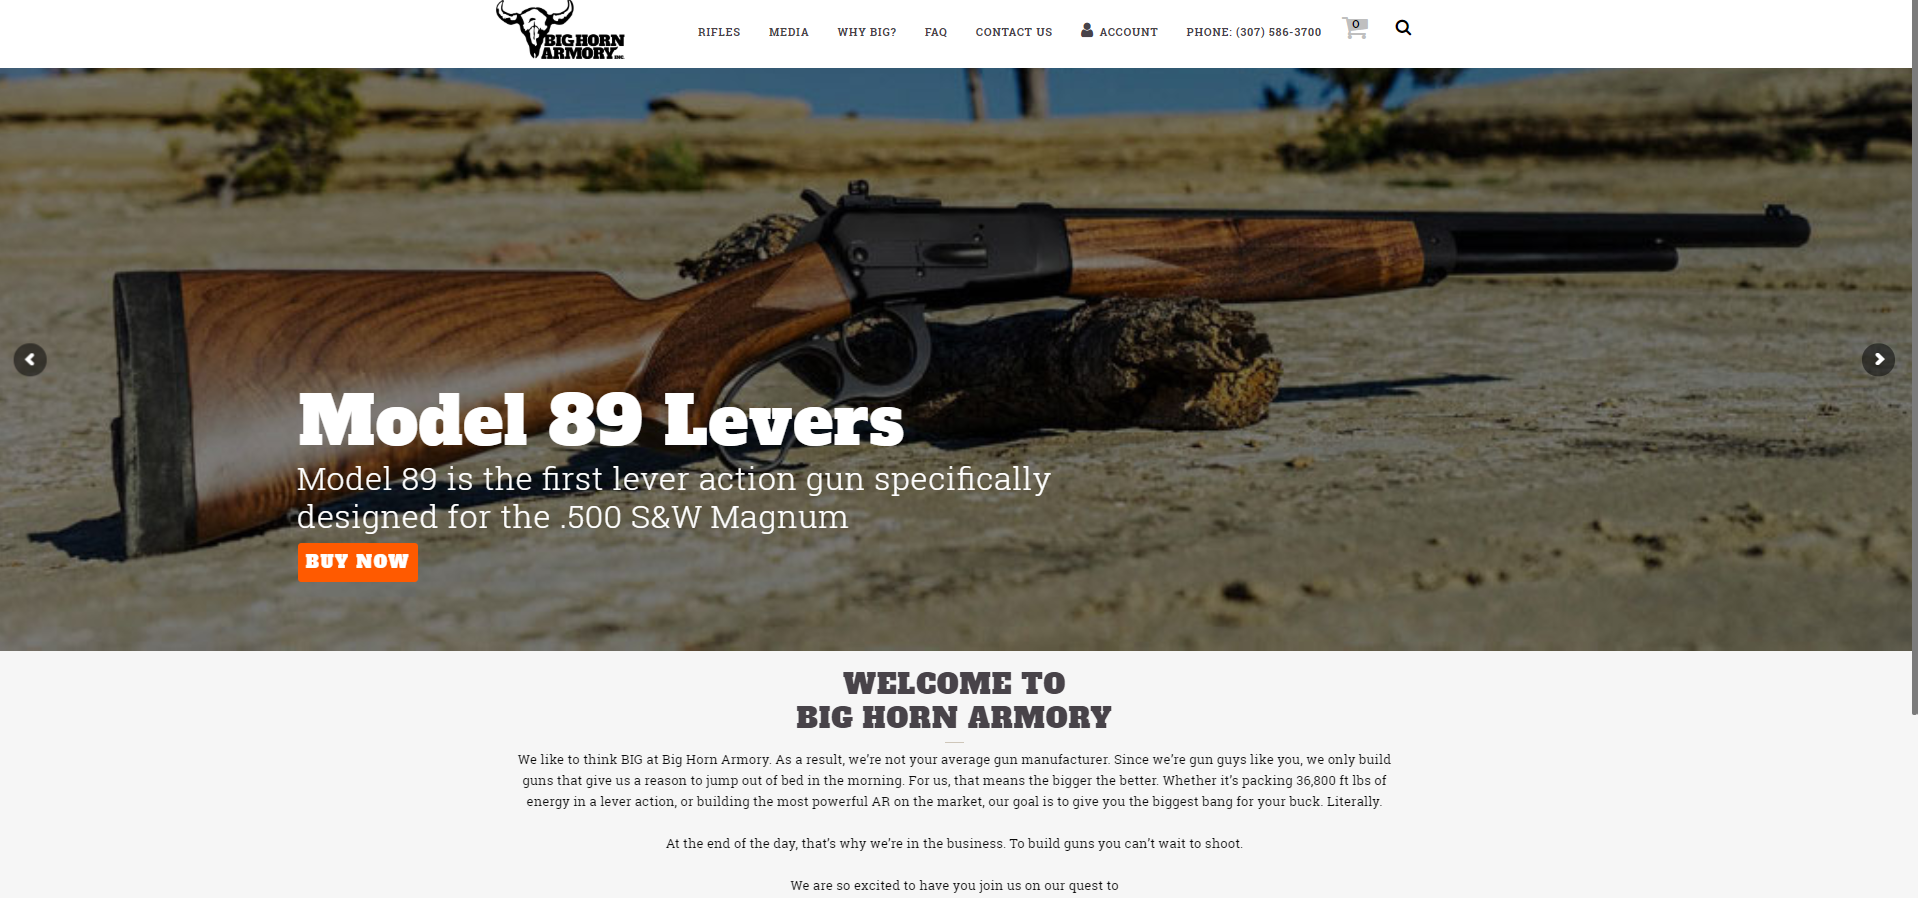 Big Horn Armory Launches Brand New Website